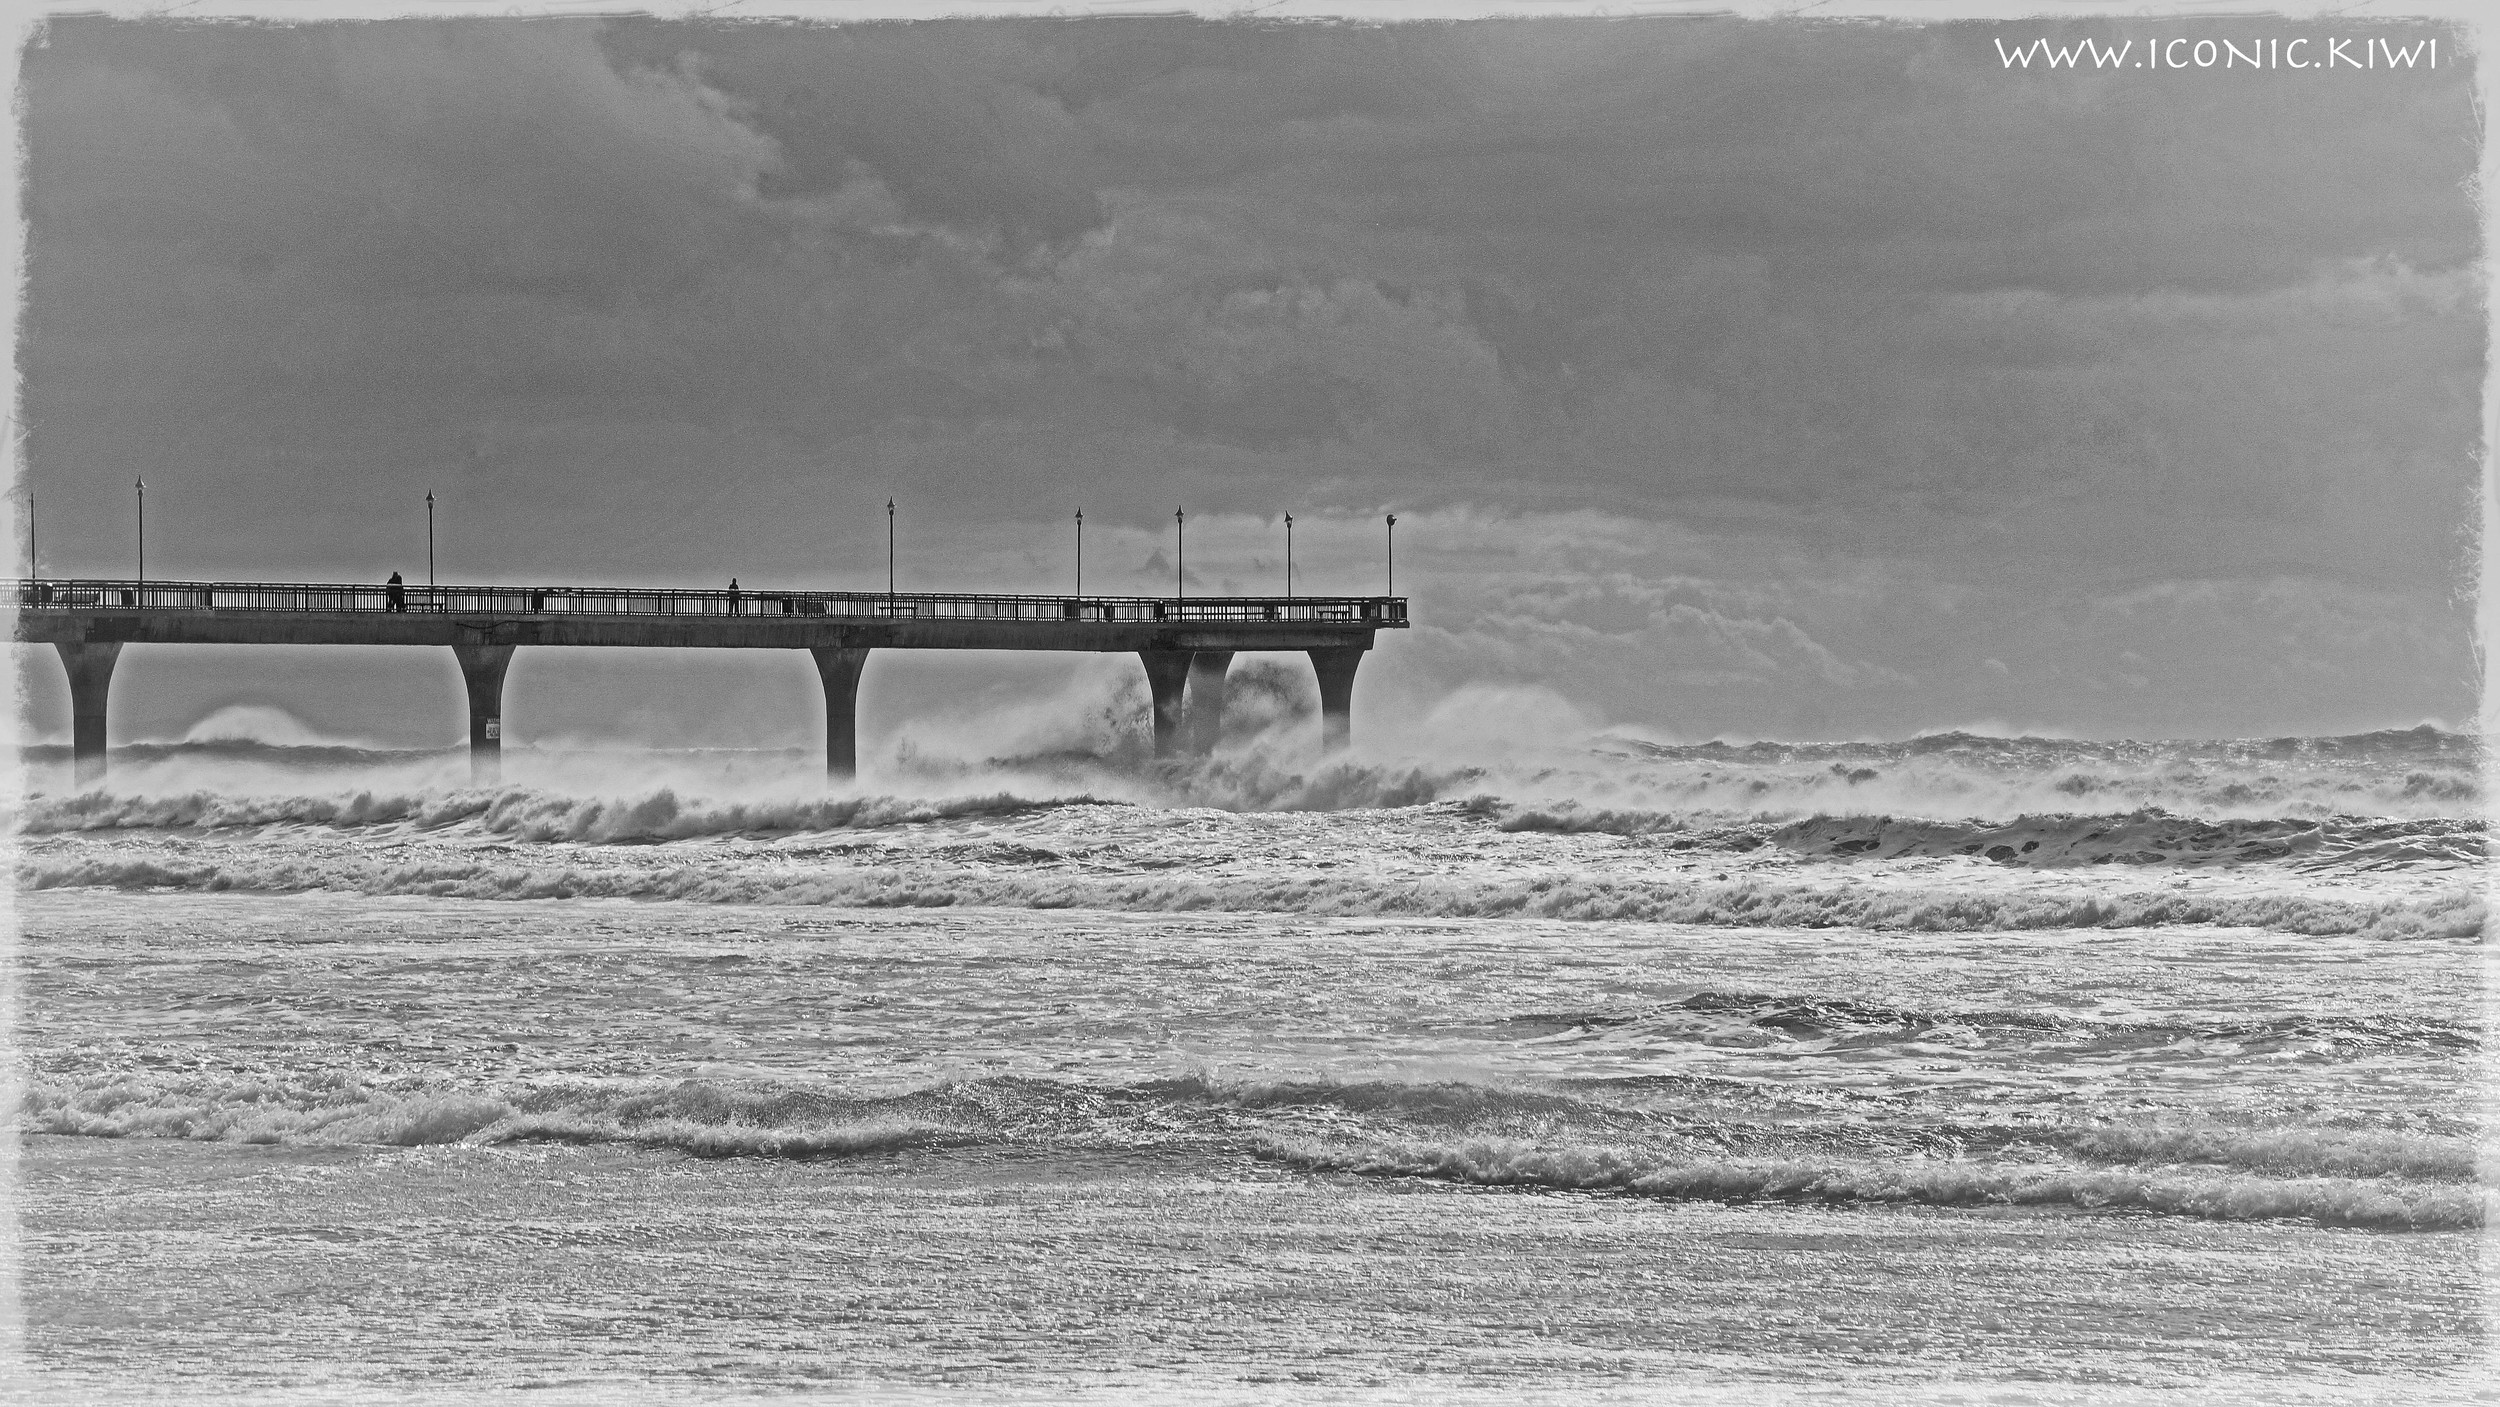 Christchurch Pier, where stormy waves mingle with the clouds